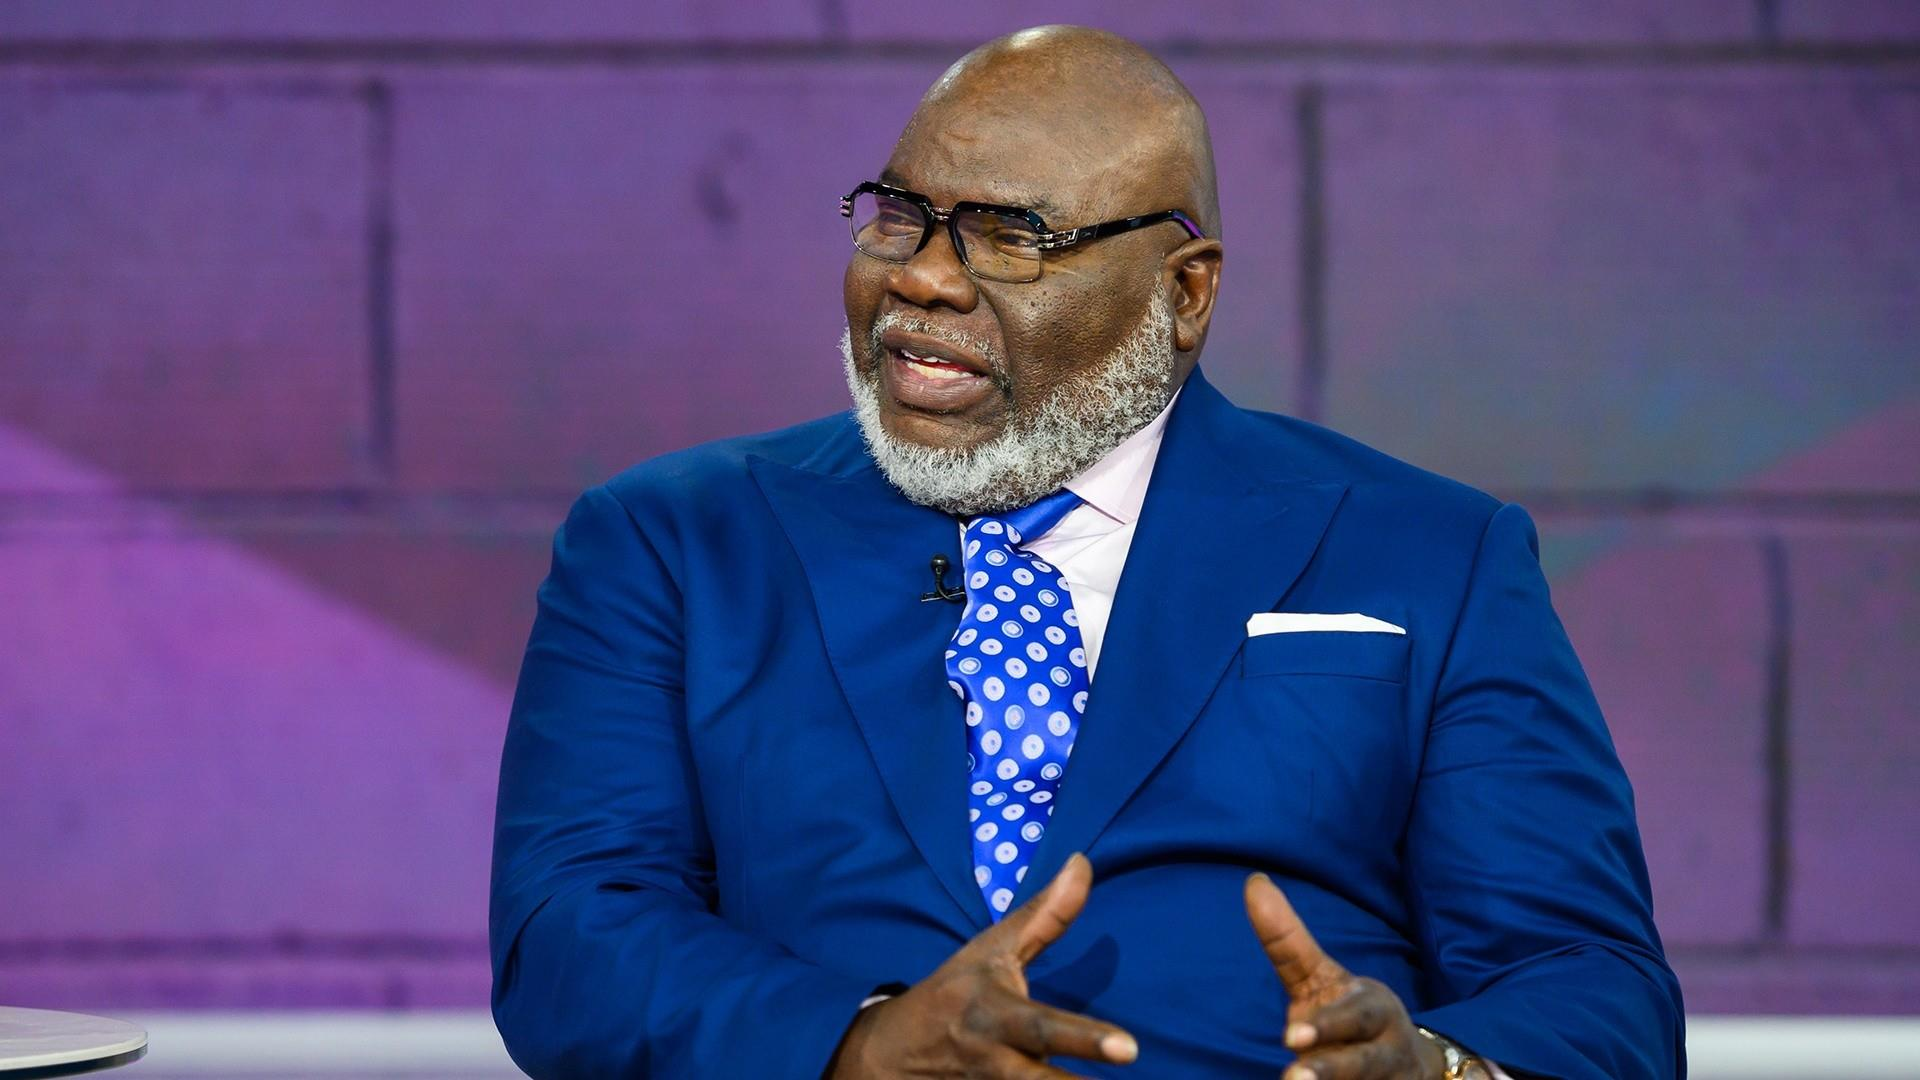 T D  Jakes on transforming difficult times into moments of hope